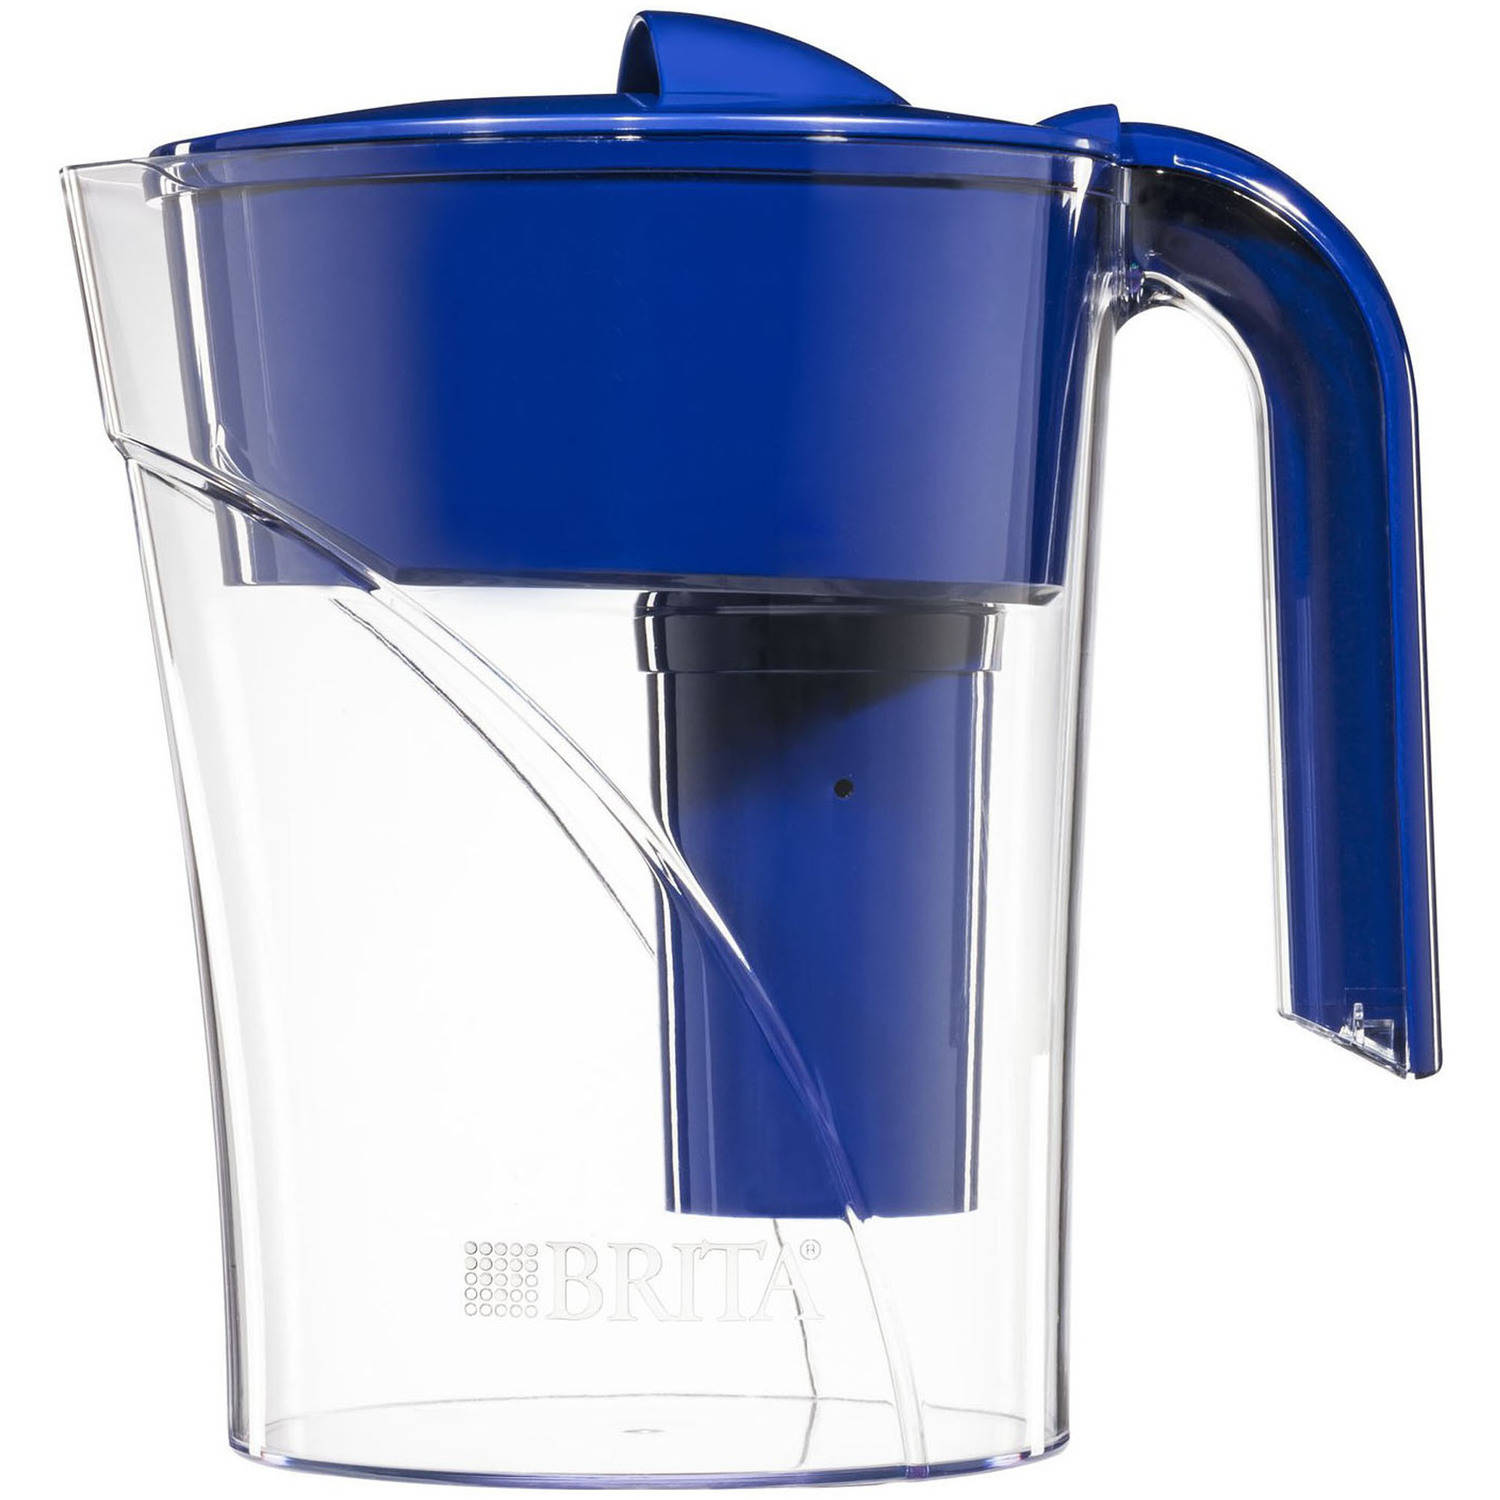 Brita Mist Water Pitcher with 1 Filter, BPA Free, Dark Blue, 6 Cup